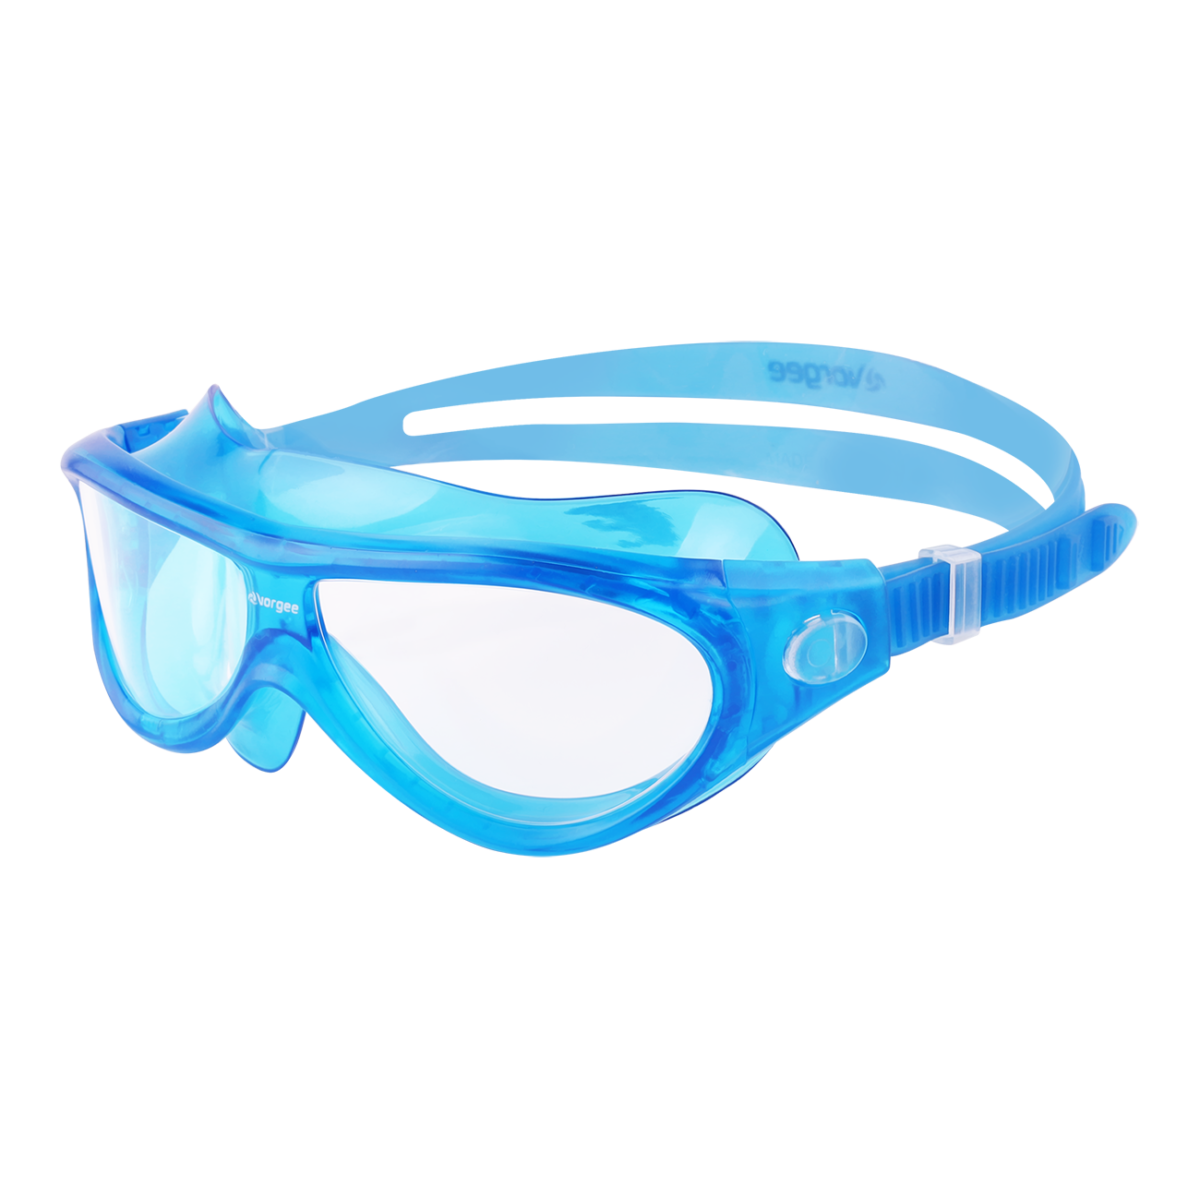 Blue junior mask style swimming goggles for children. Endorsed by Kids Alive Do the Five